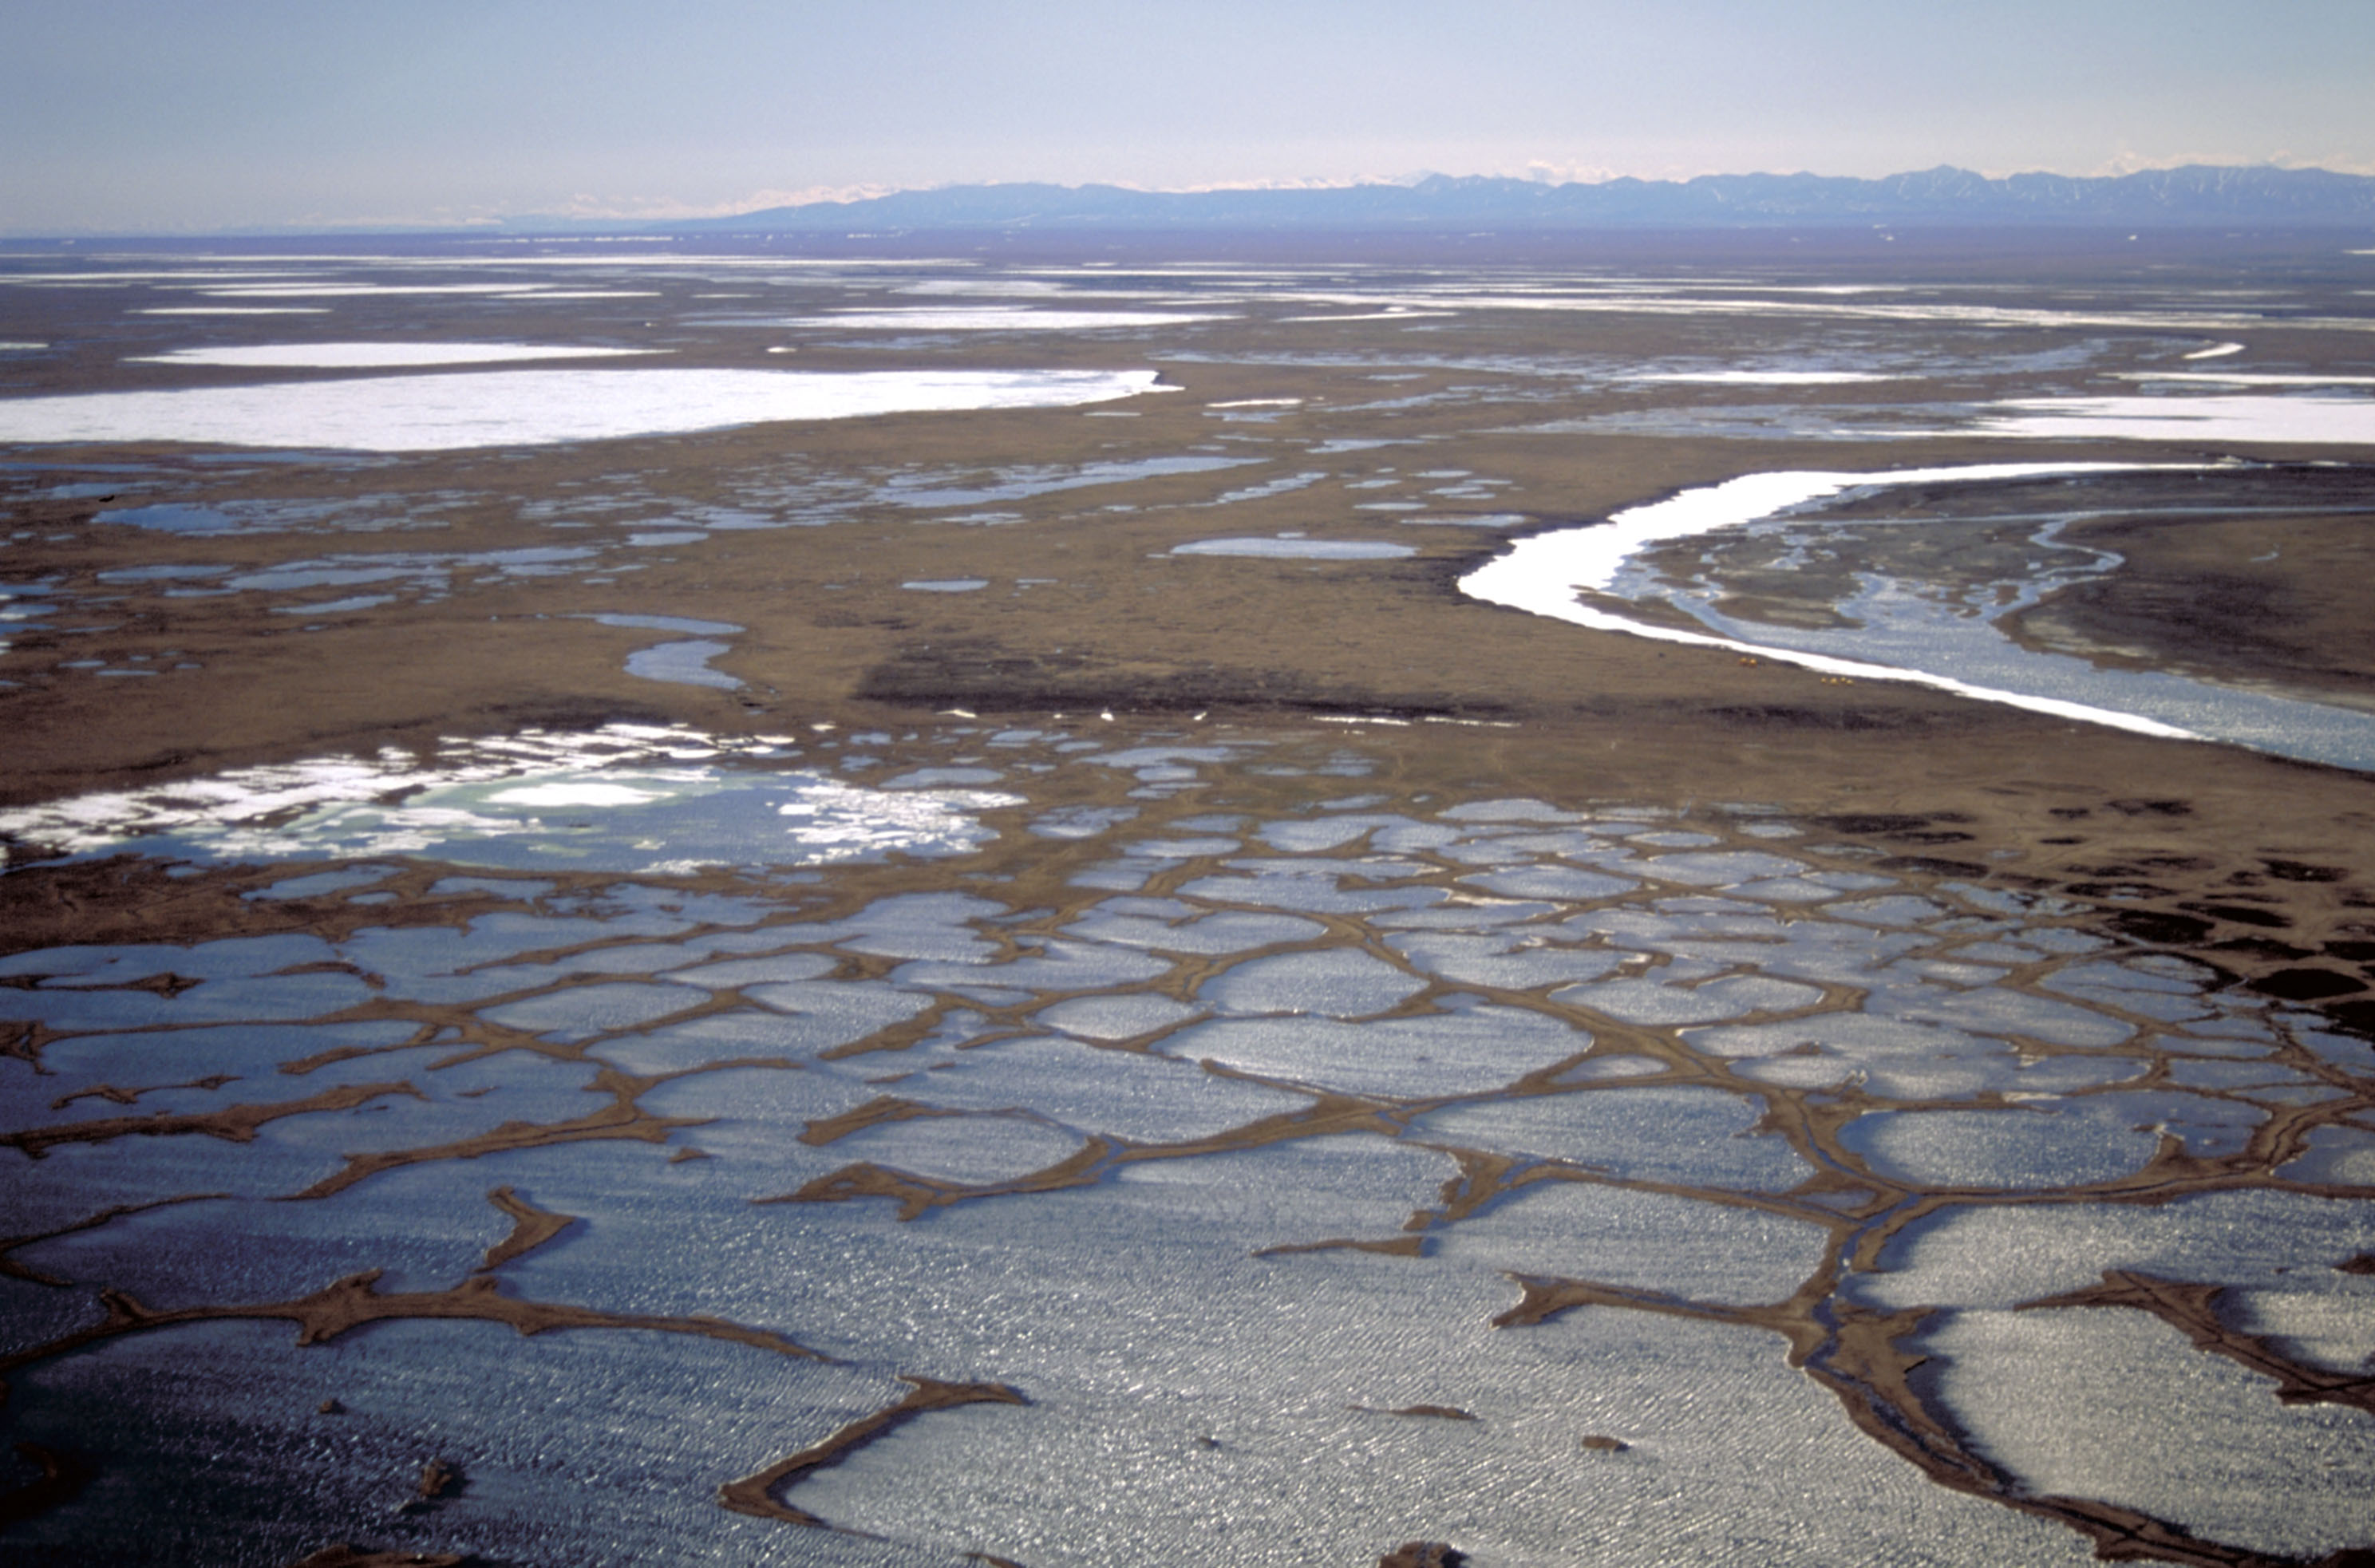 The coastal plain within the 1002 Area of the Arctic National Wildlife Refuge is seen in this undated handout photo provided by the U.S. Fish and Wildlife Service Alaska Image Library. REUTERS/HANDOUT/U.S. Fish and Wildlife Service